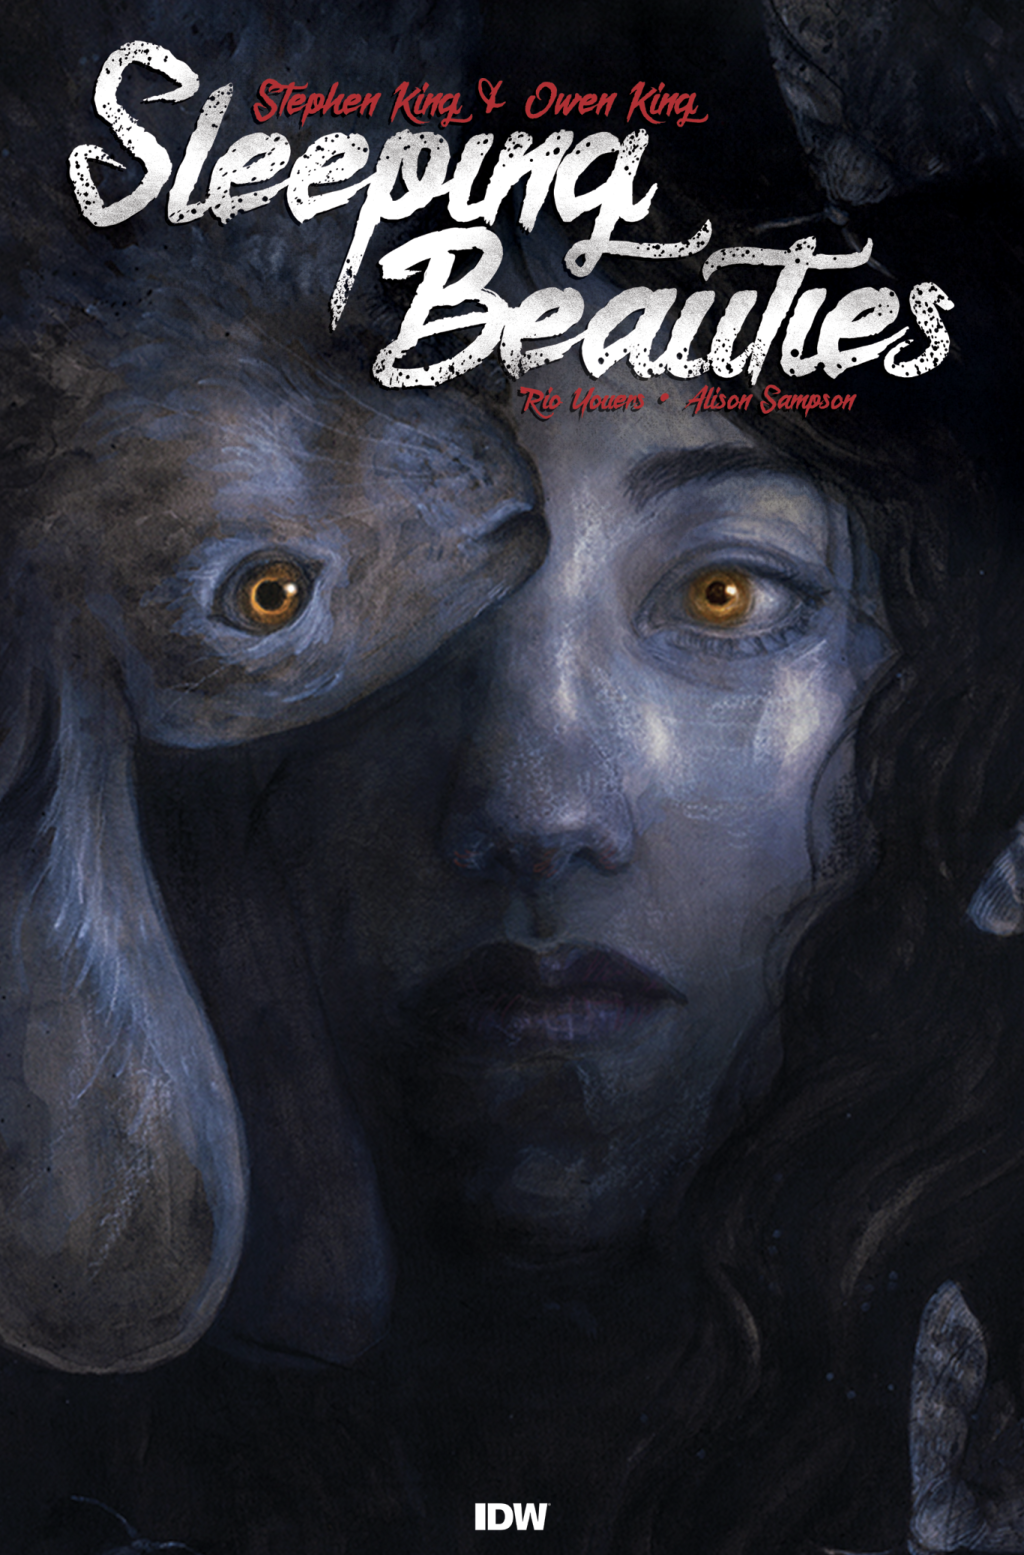 IDW's Sleeping Beauties cover showing a girl with a golden eye and blue skin